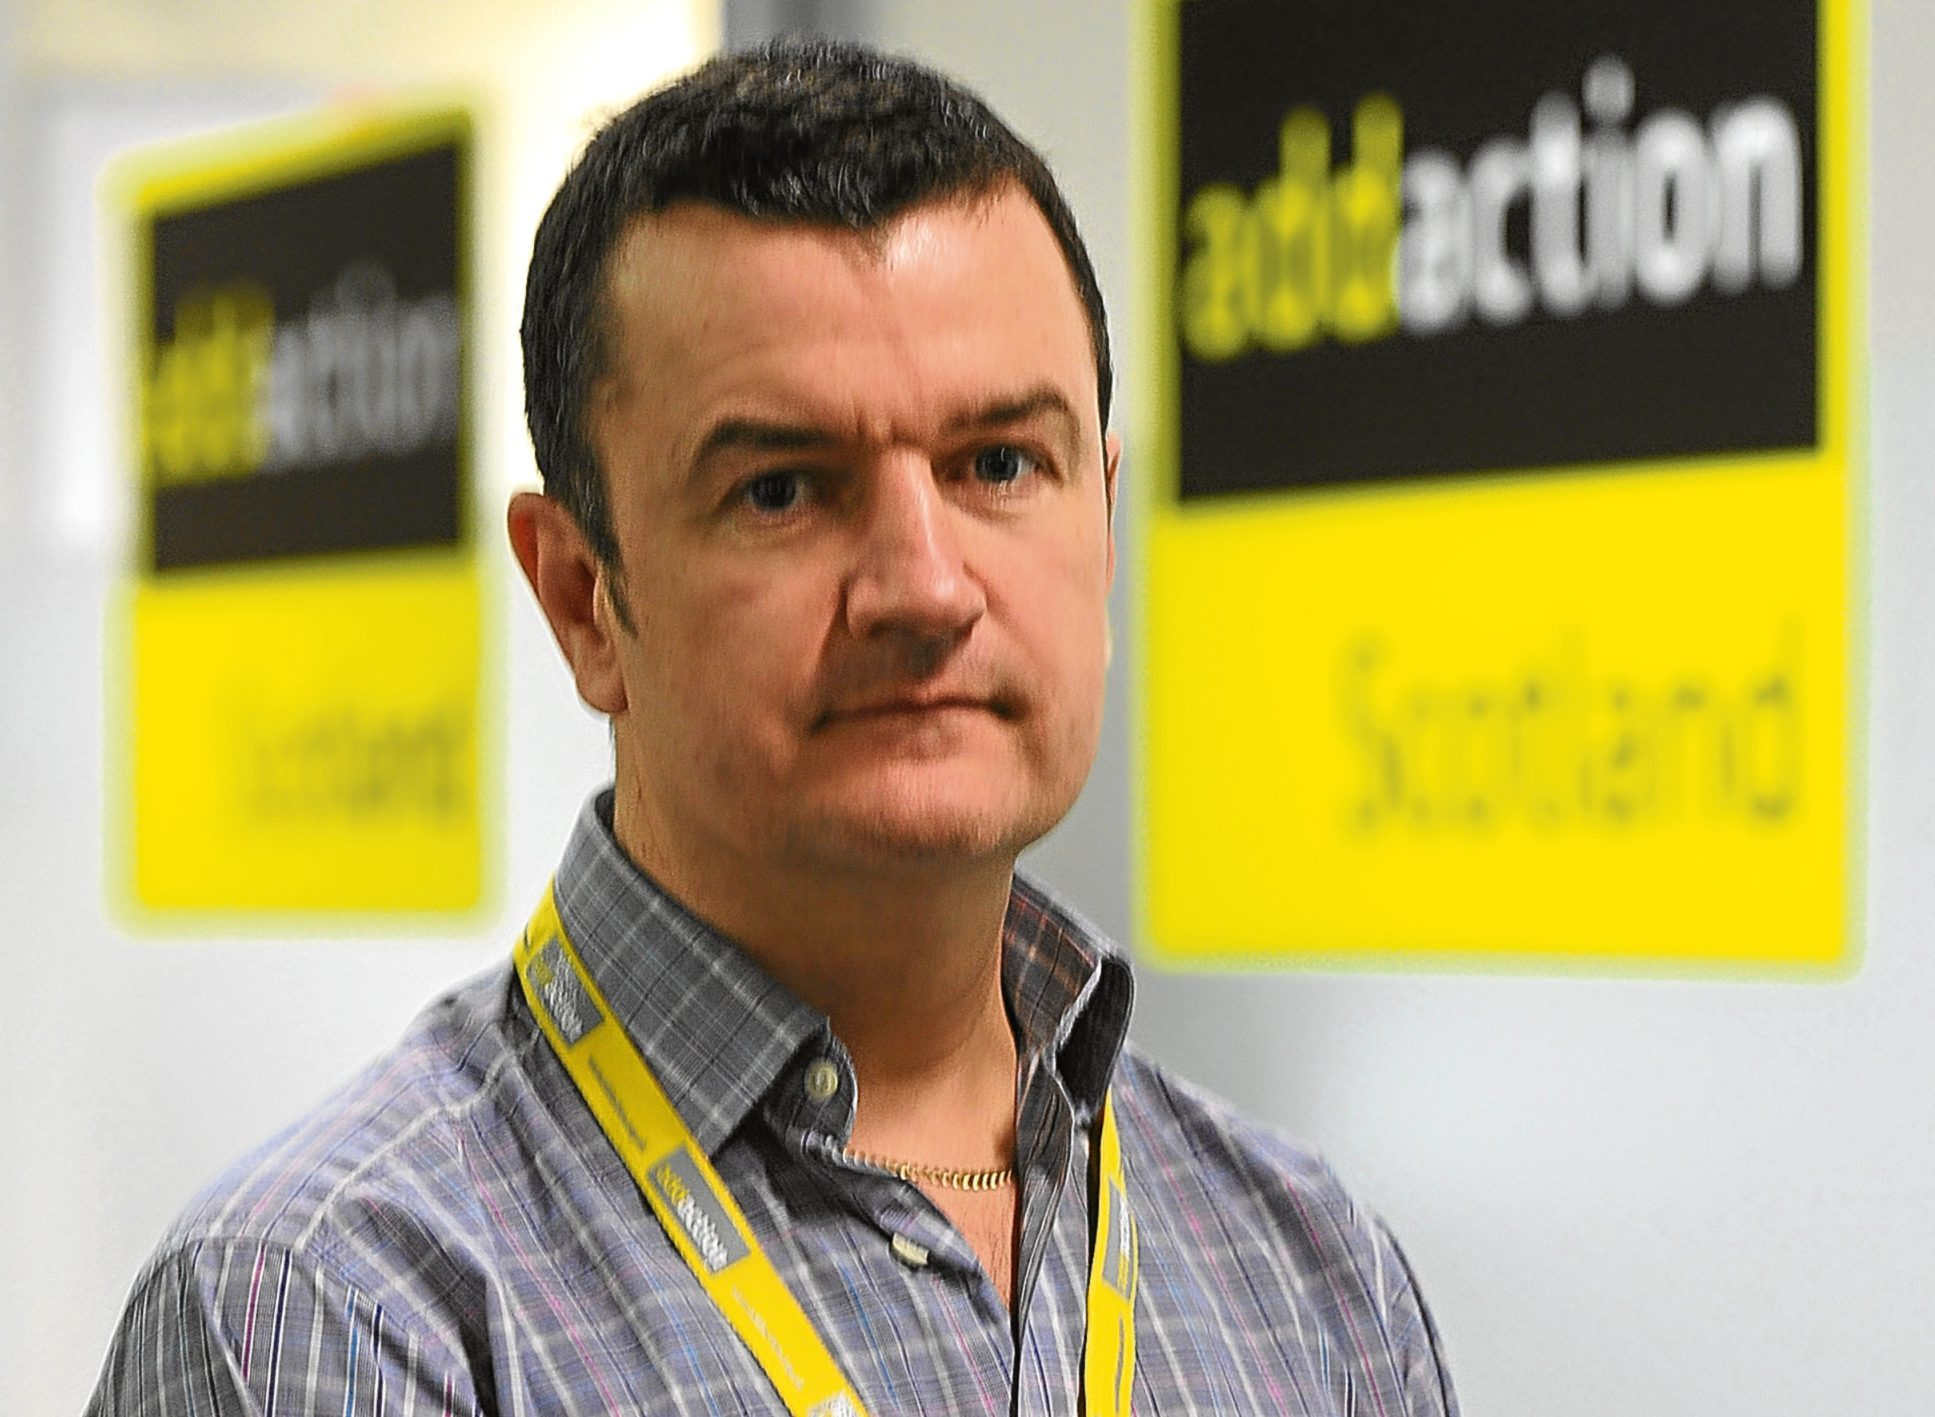 Dave Barrie, service manager at Addaction.